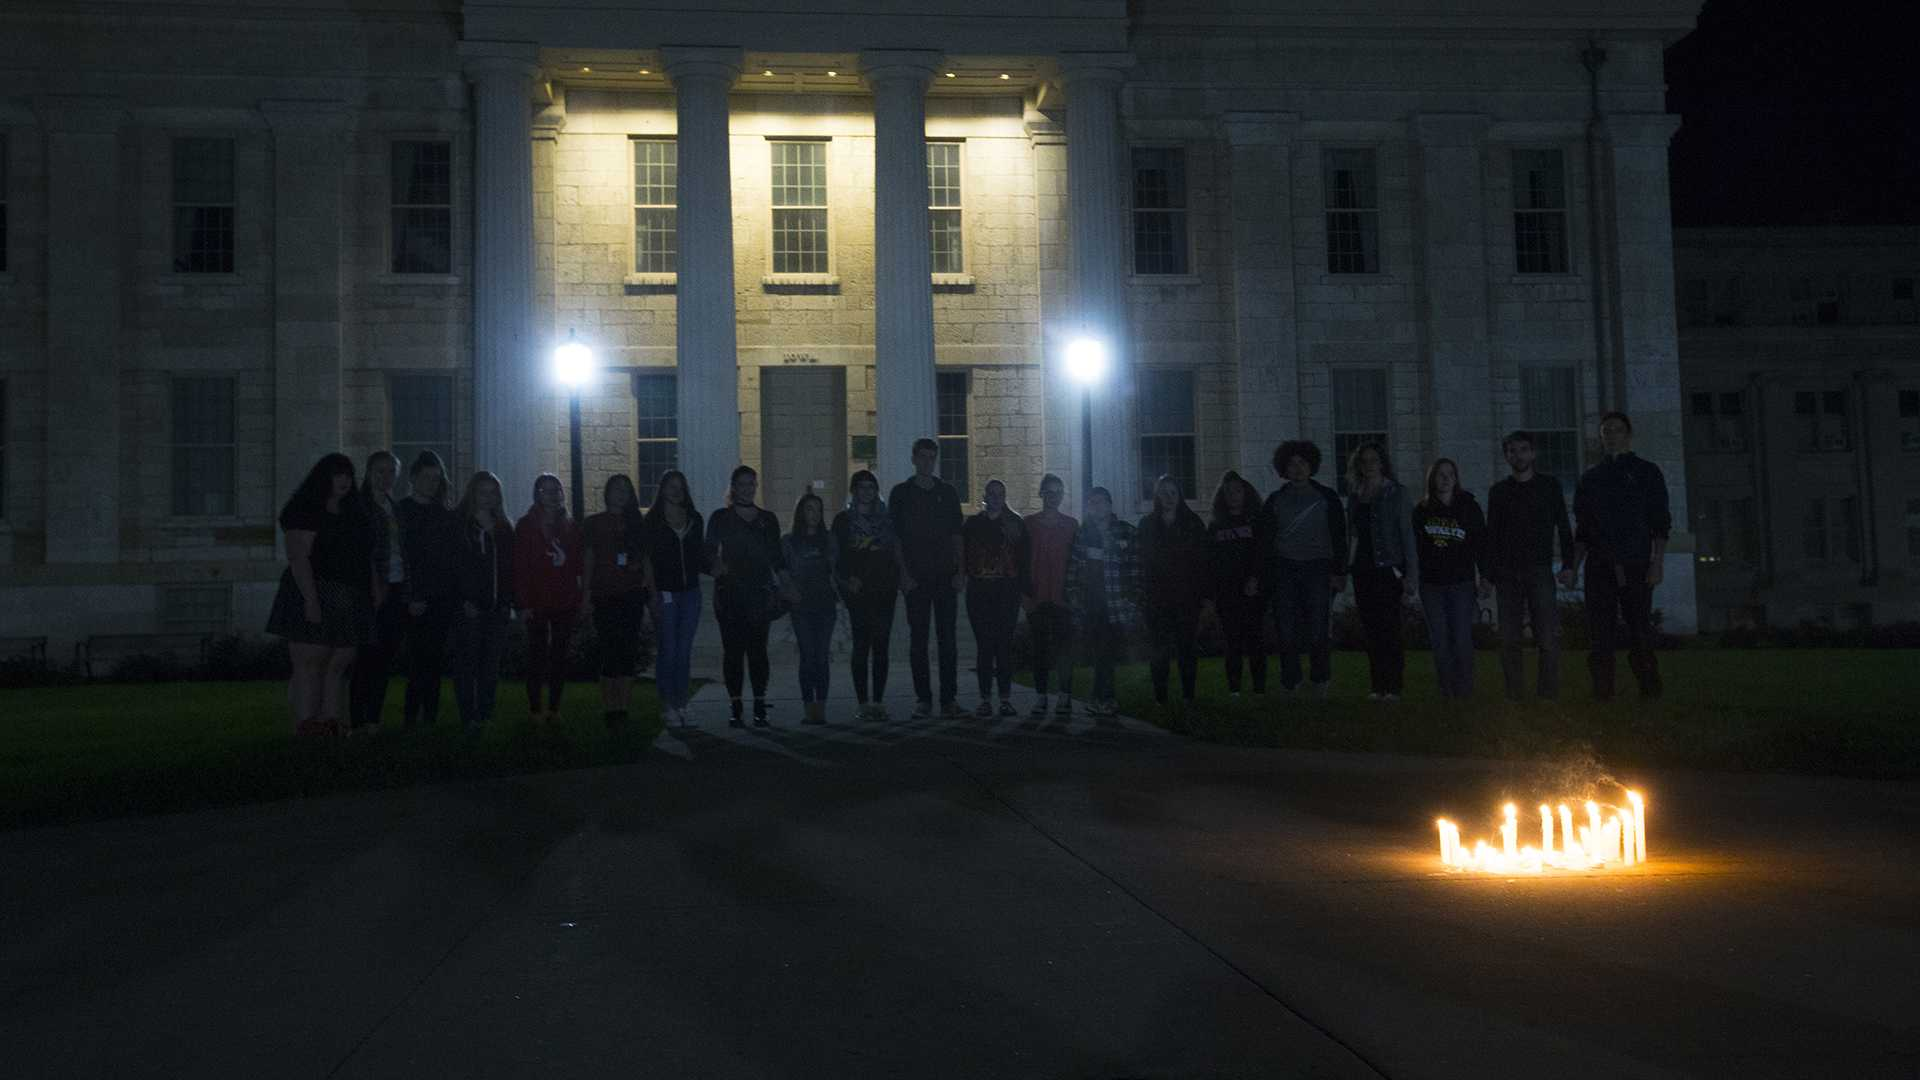 Survivors and allies hold hands during the UI Sister Vigil for Survivors of Campus Sexual Assault on the Pentacrest on Tuesday, Oct. 17, 2017. The event included letter writing to Iowa senators and the signing of thank you state of Iowa flags to senators fighting the withdrawal of Title IX protections for survivors of sexual assault. (Lily Smith/The Daily Iowan)